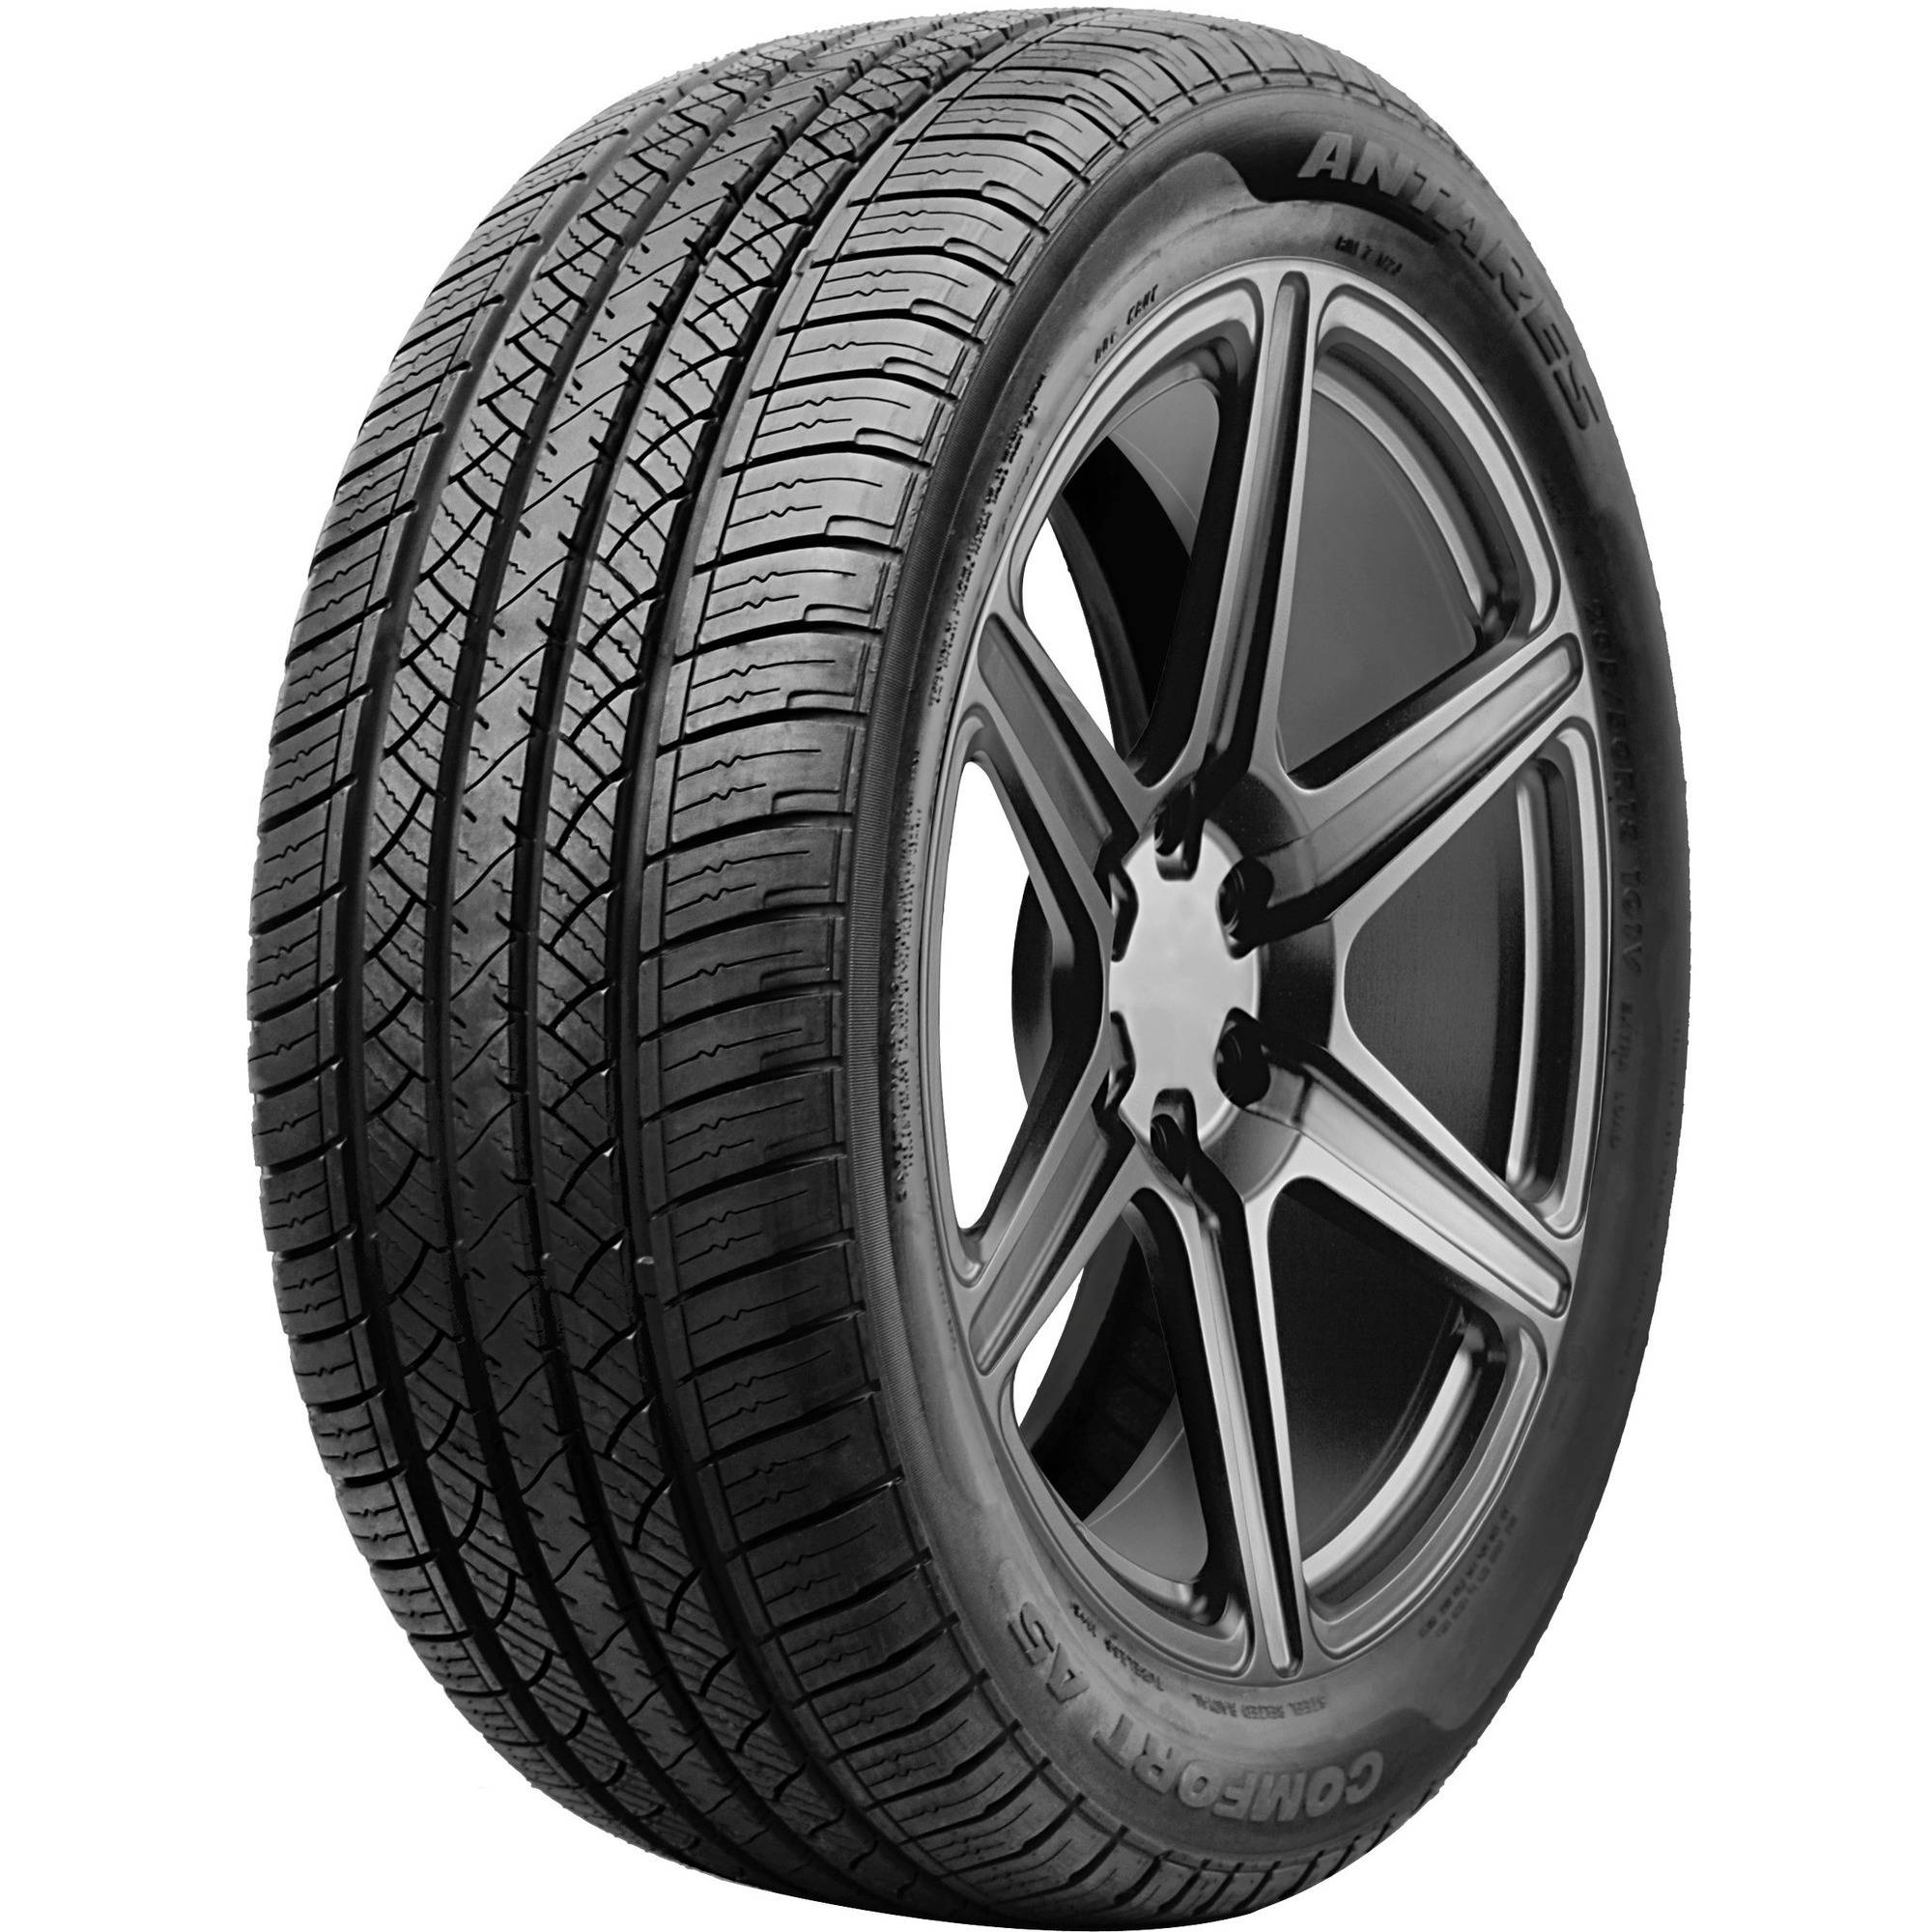 Antares Comfort A5 215 70R16 100T Tire by Antares